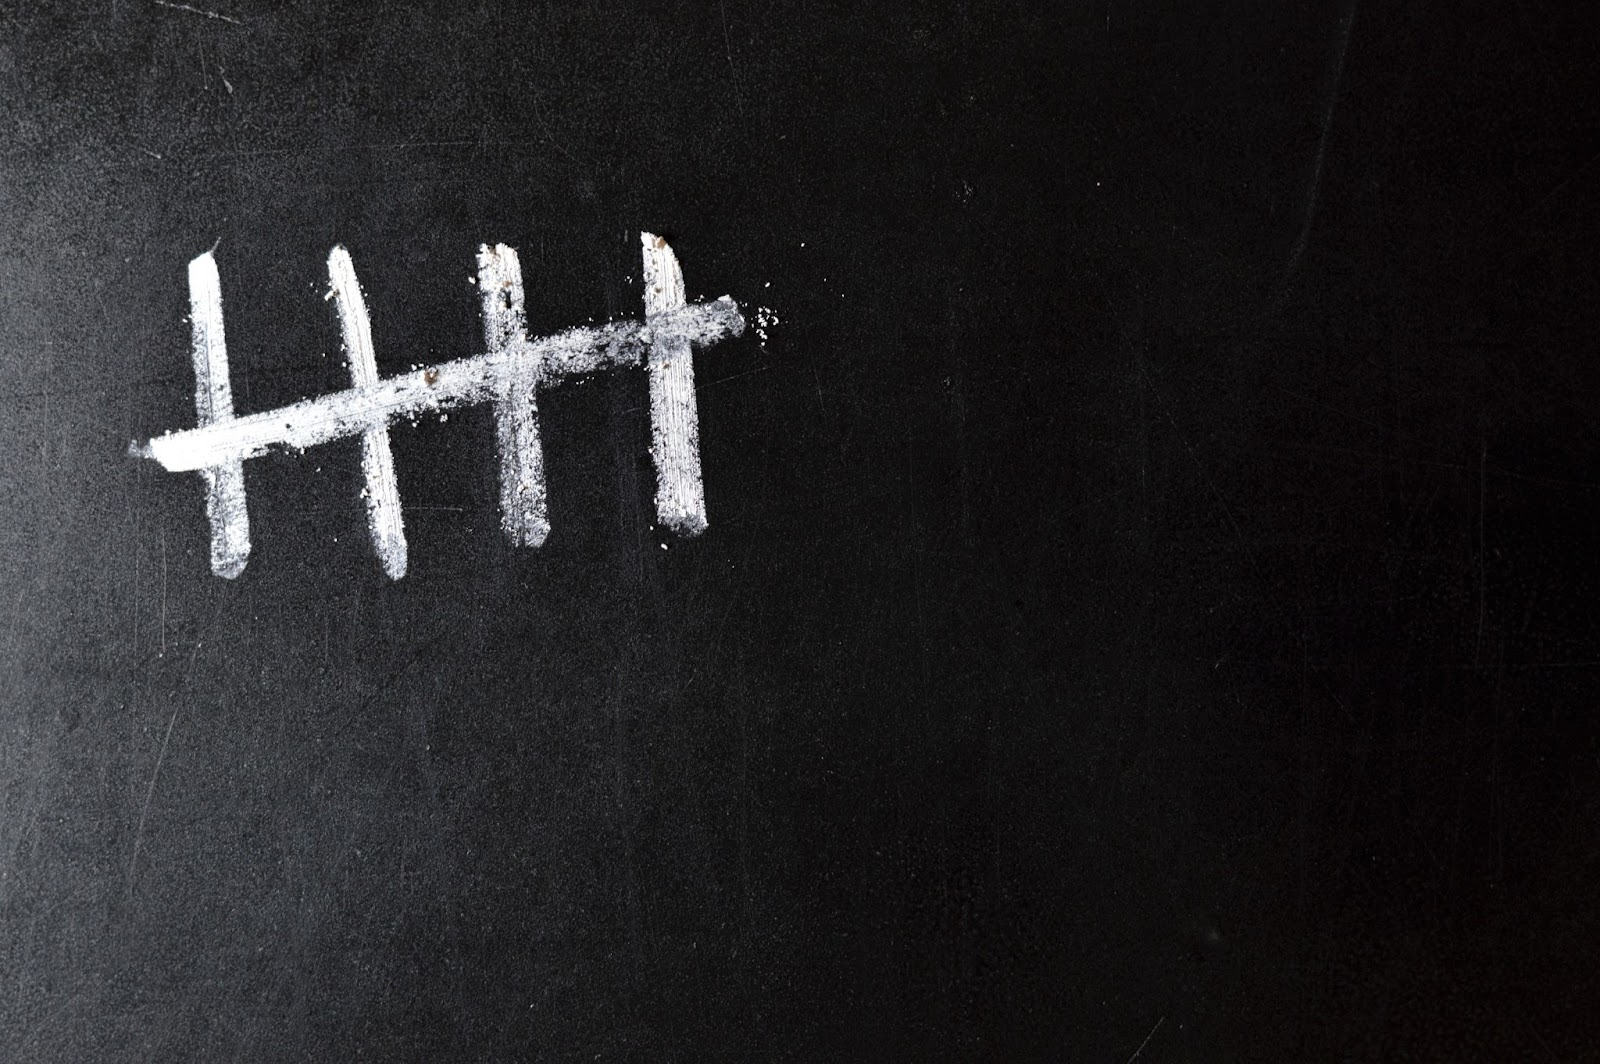 Chalk board with 5 tally marks